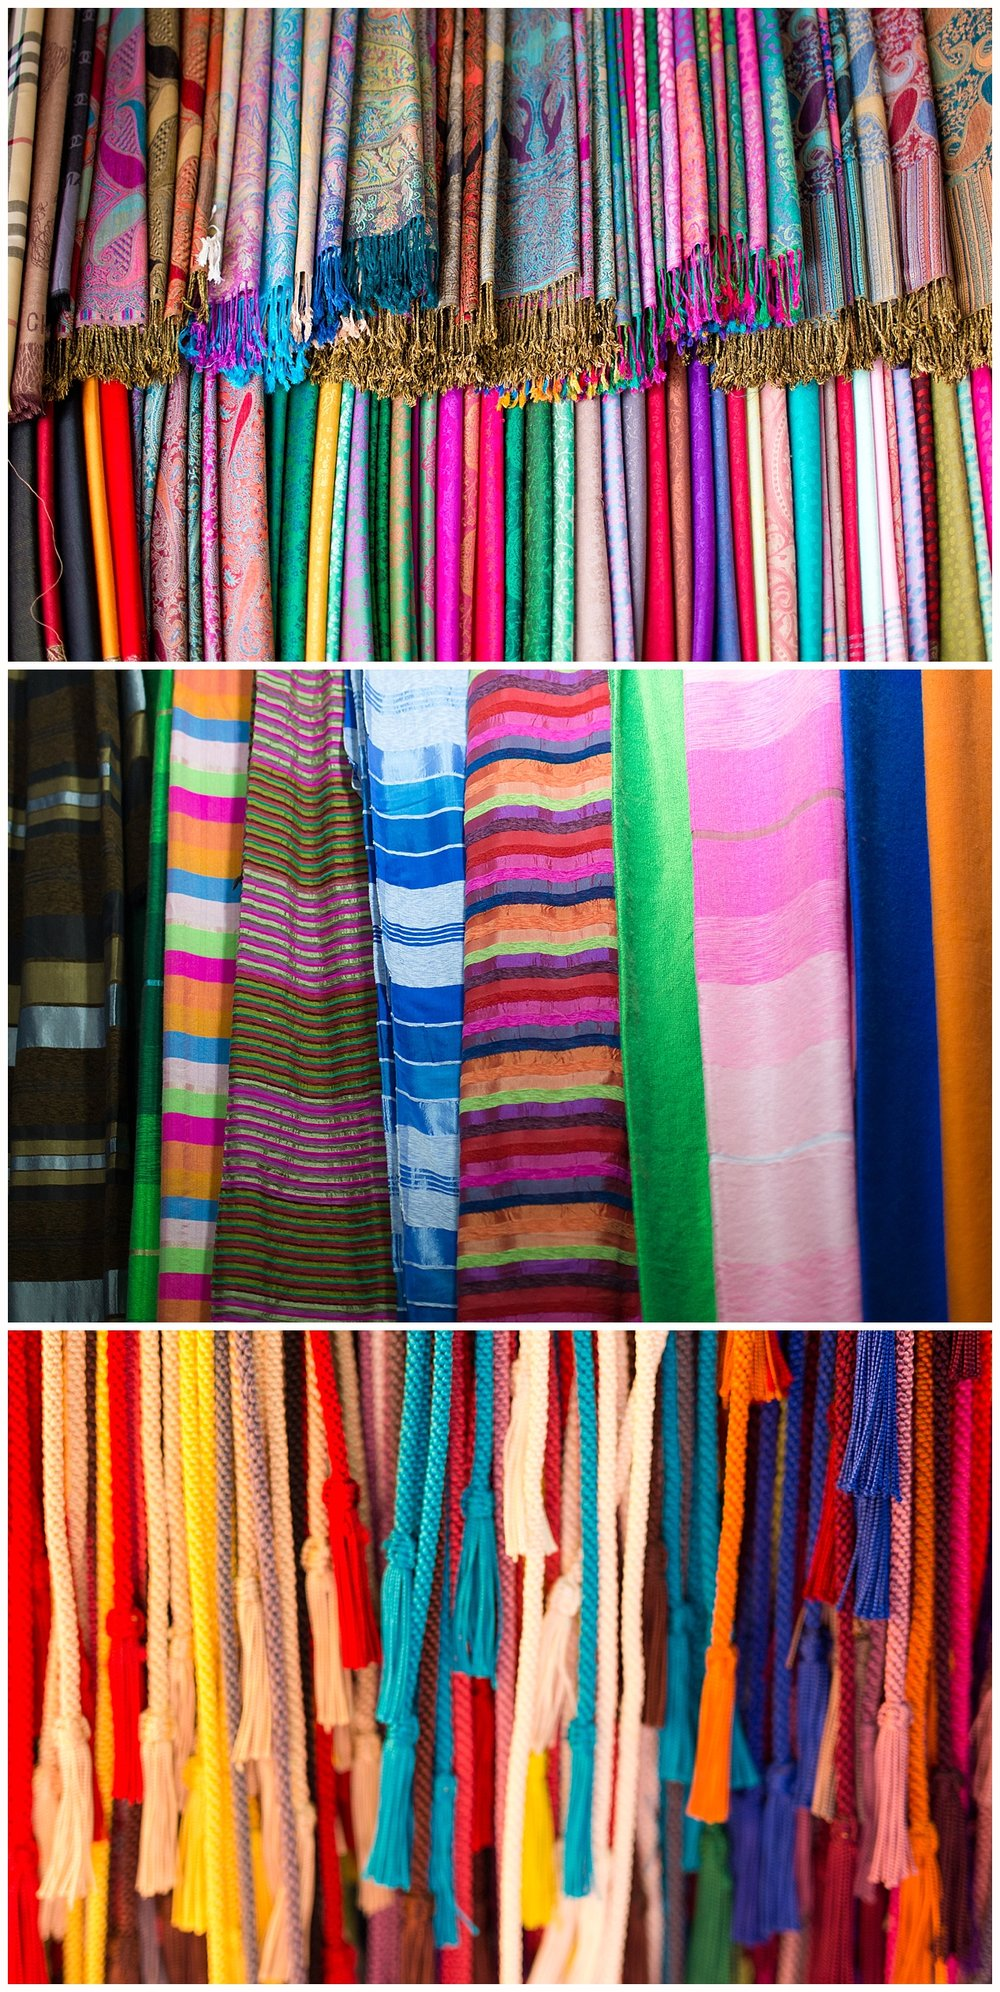 colorful fabric and clothing in Morocco